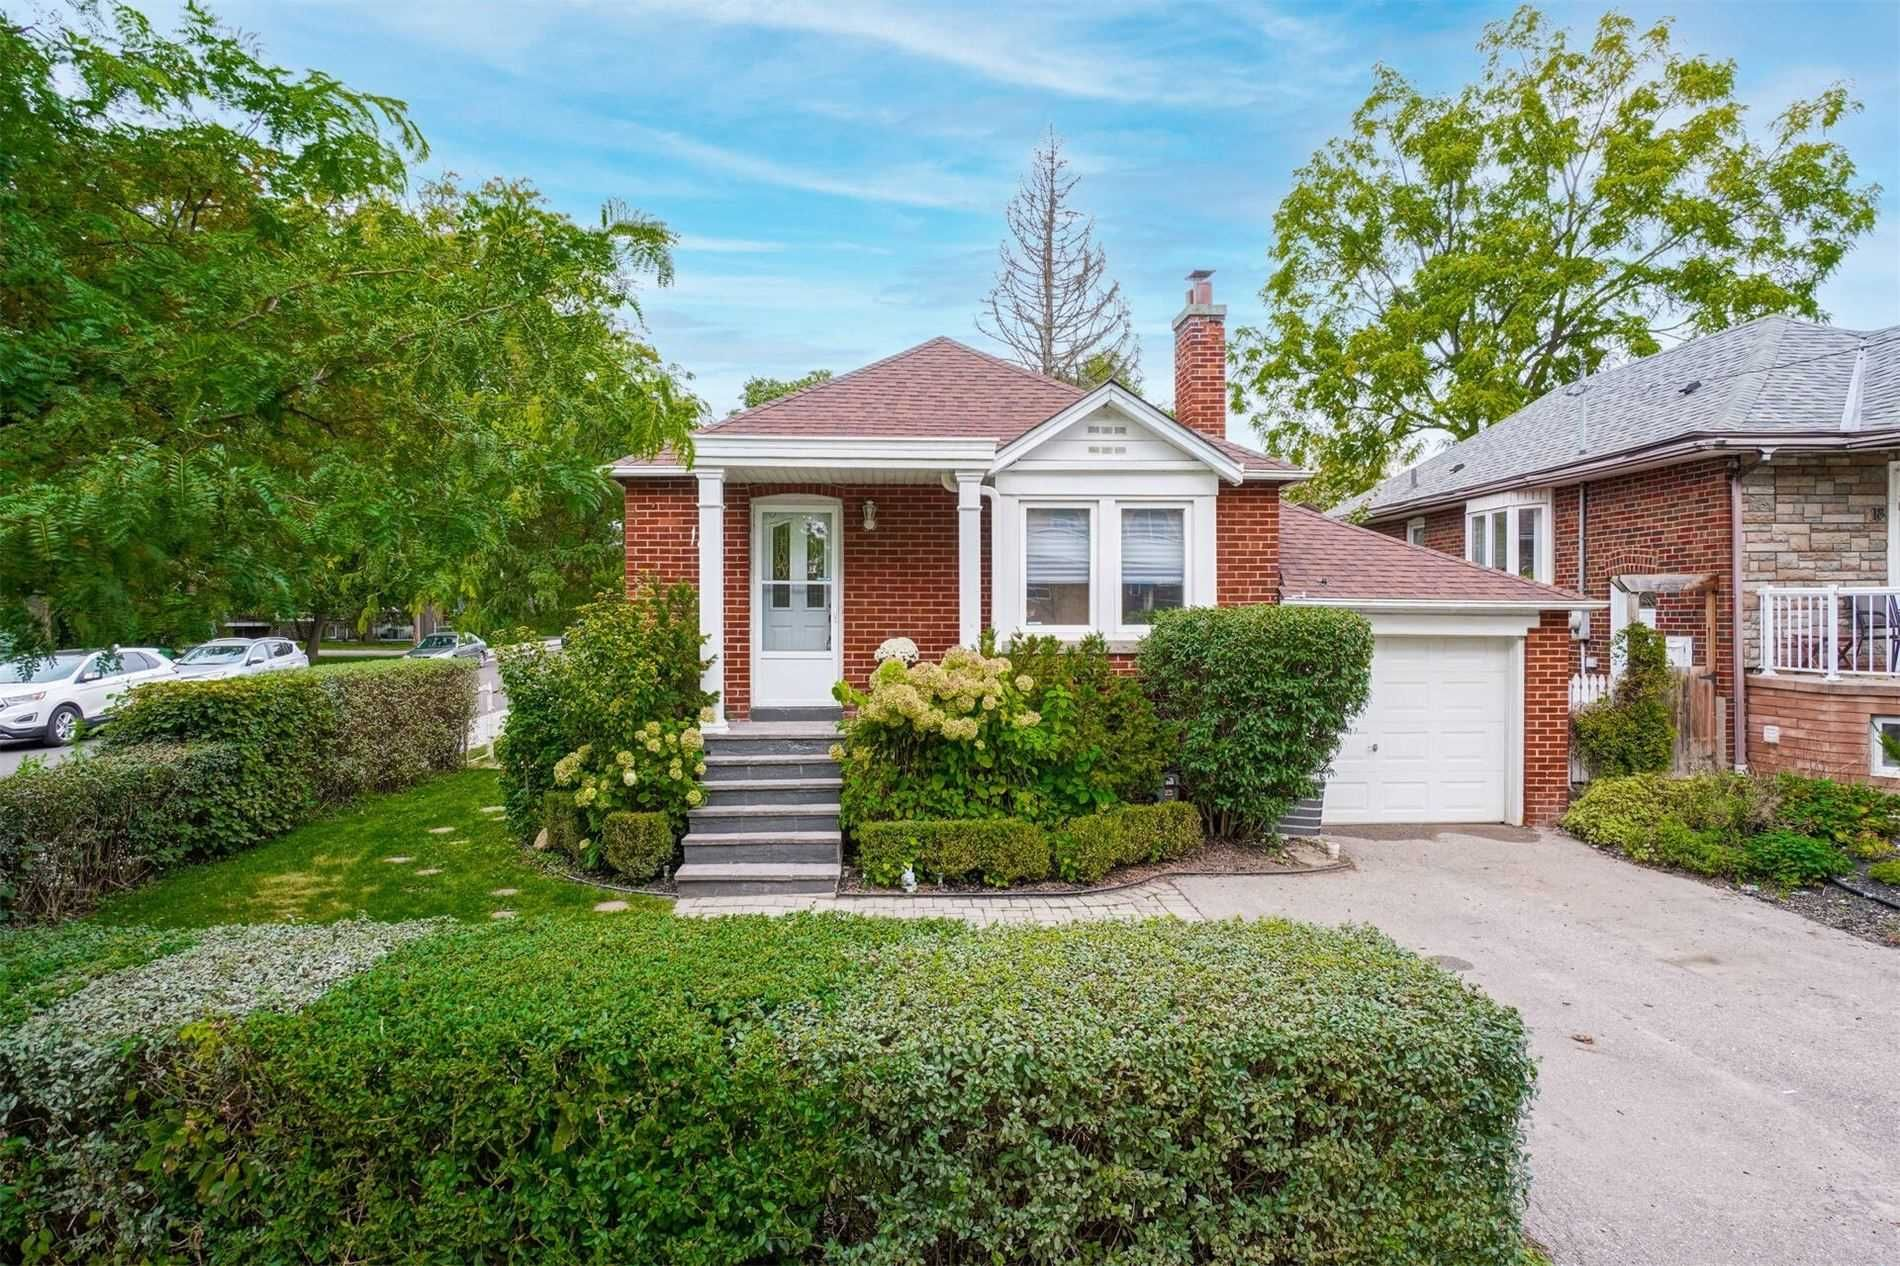 Main Photo: 18A Park Boulevard in Toronto: Long Branch House (Bungalow) for sale (Toronto W06)  : MLS®# W5401198